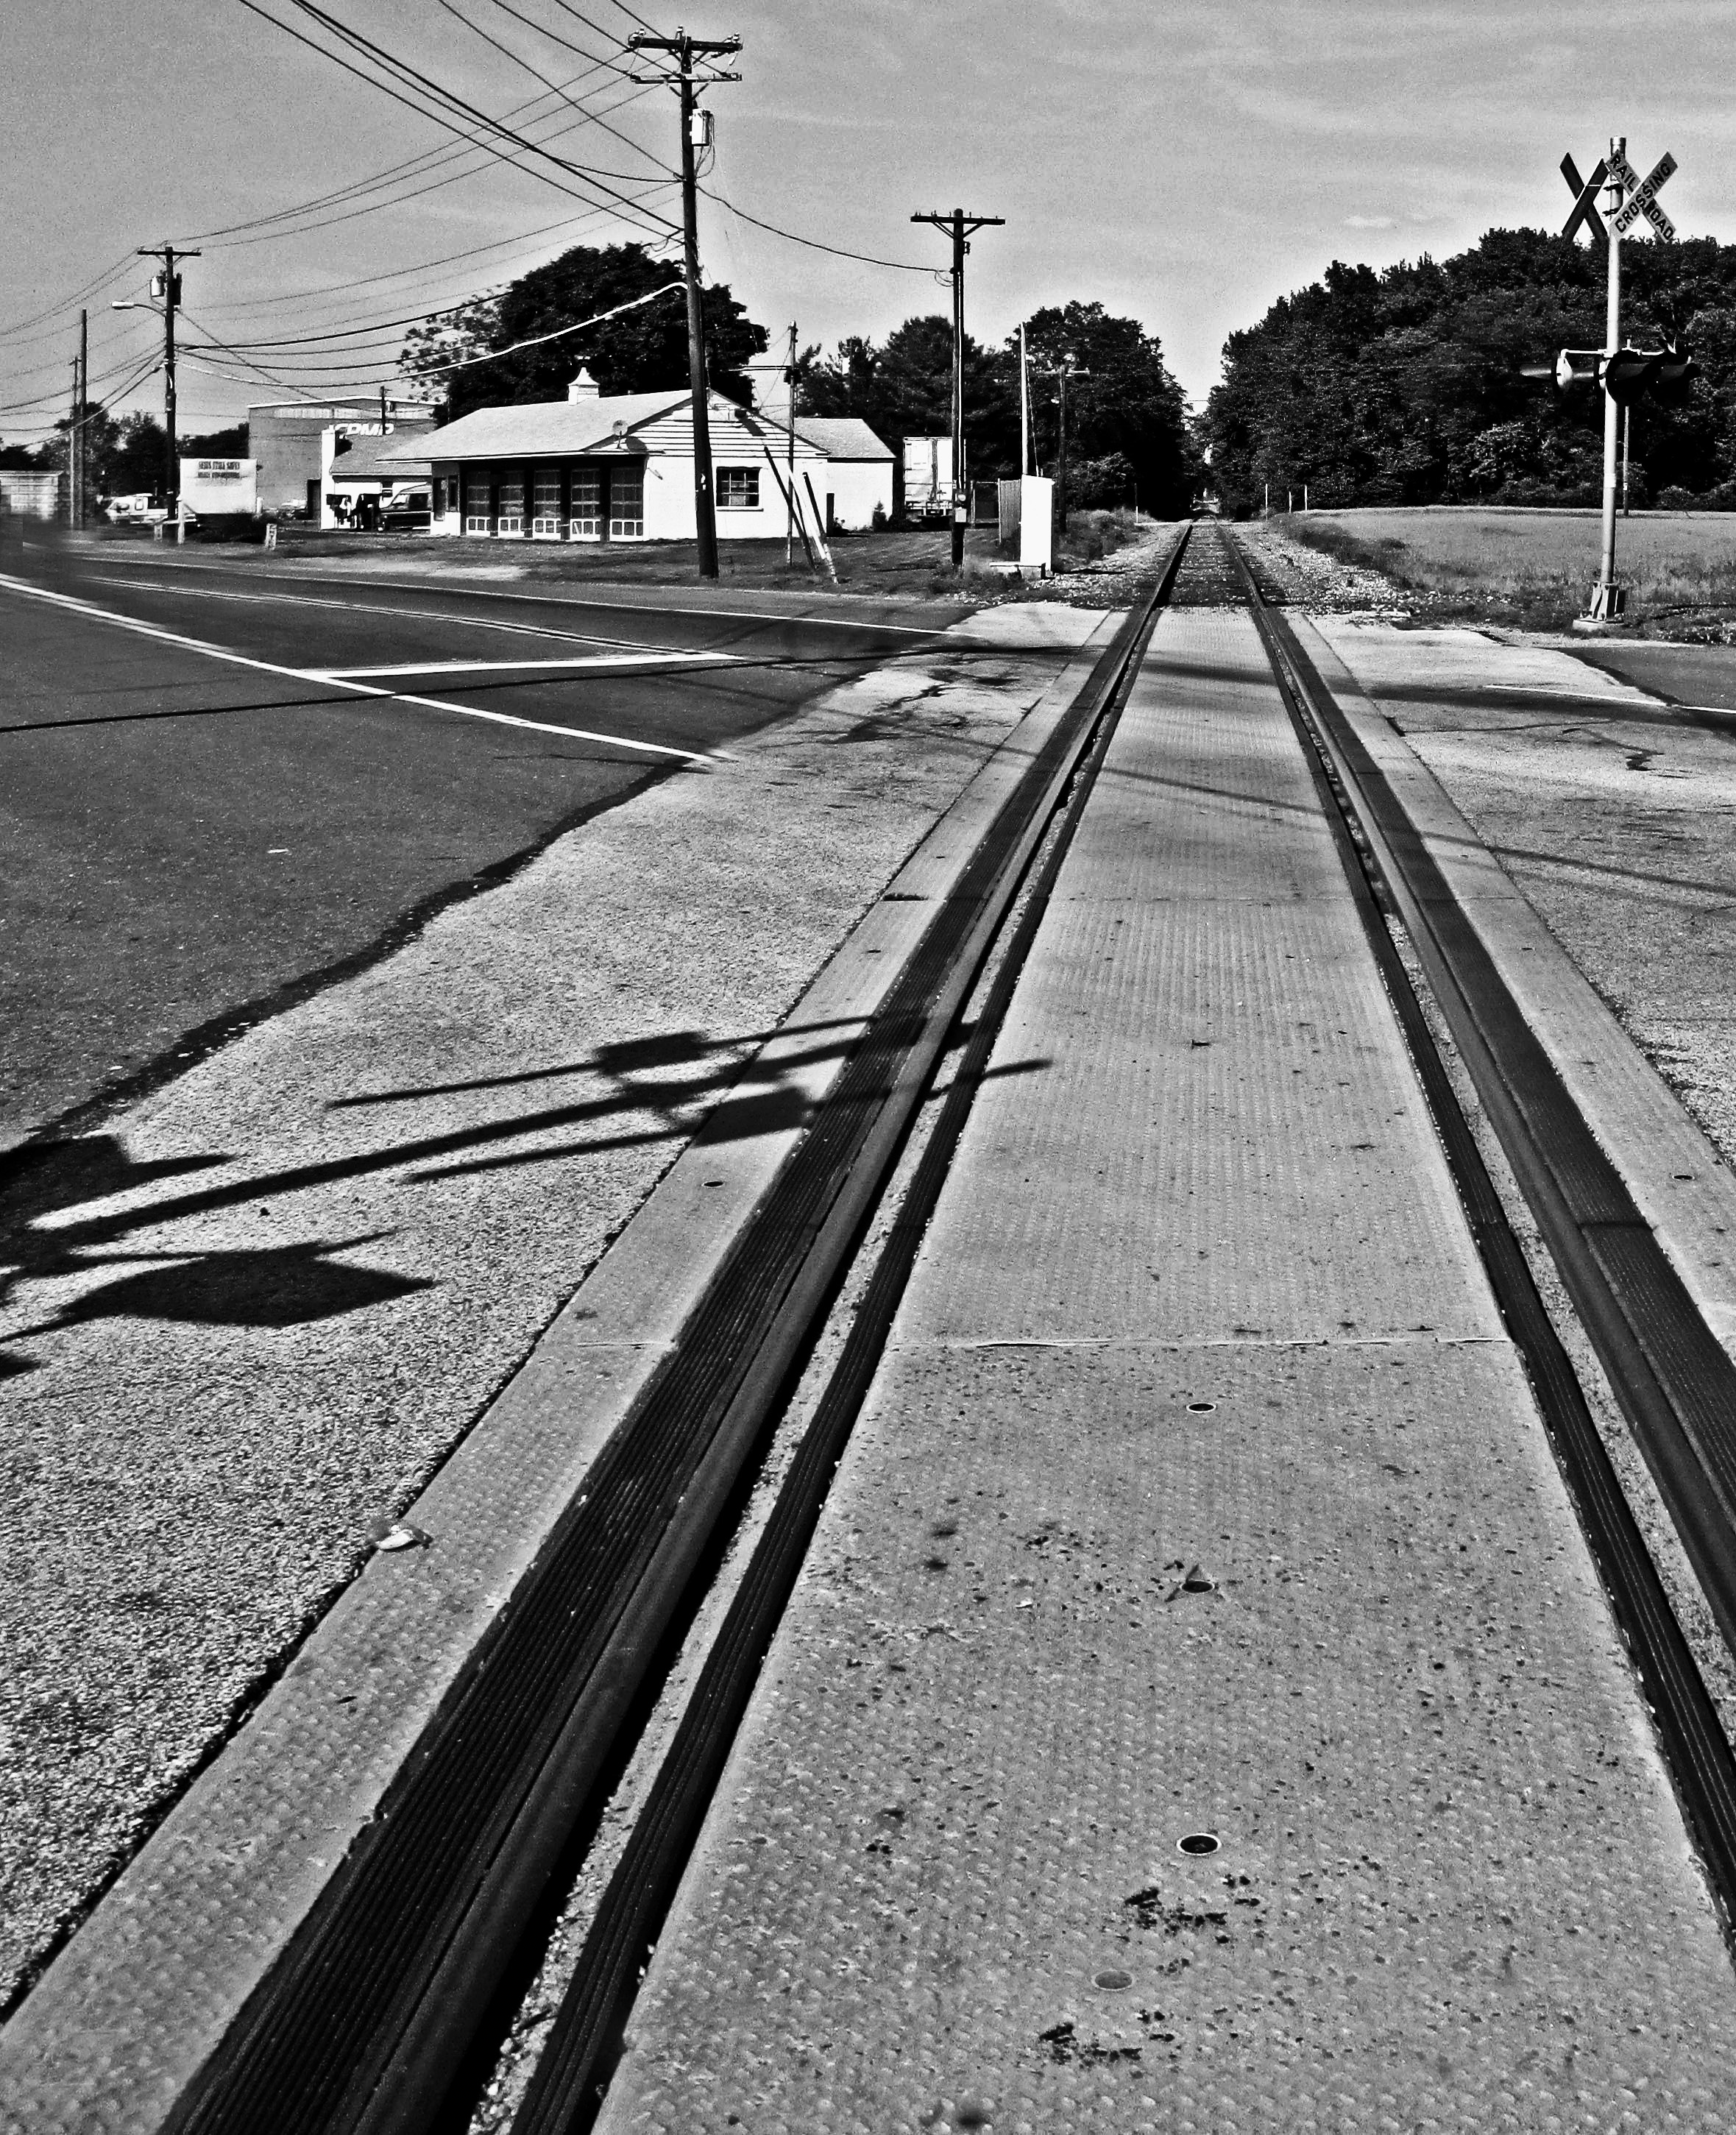 Black & White Of Rails, Signal & Shadow